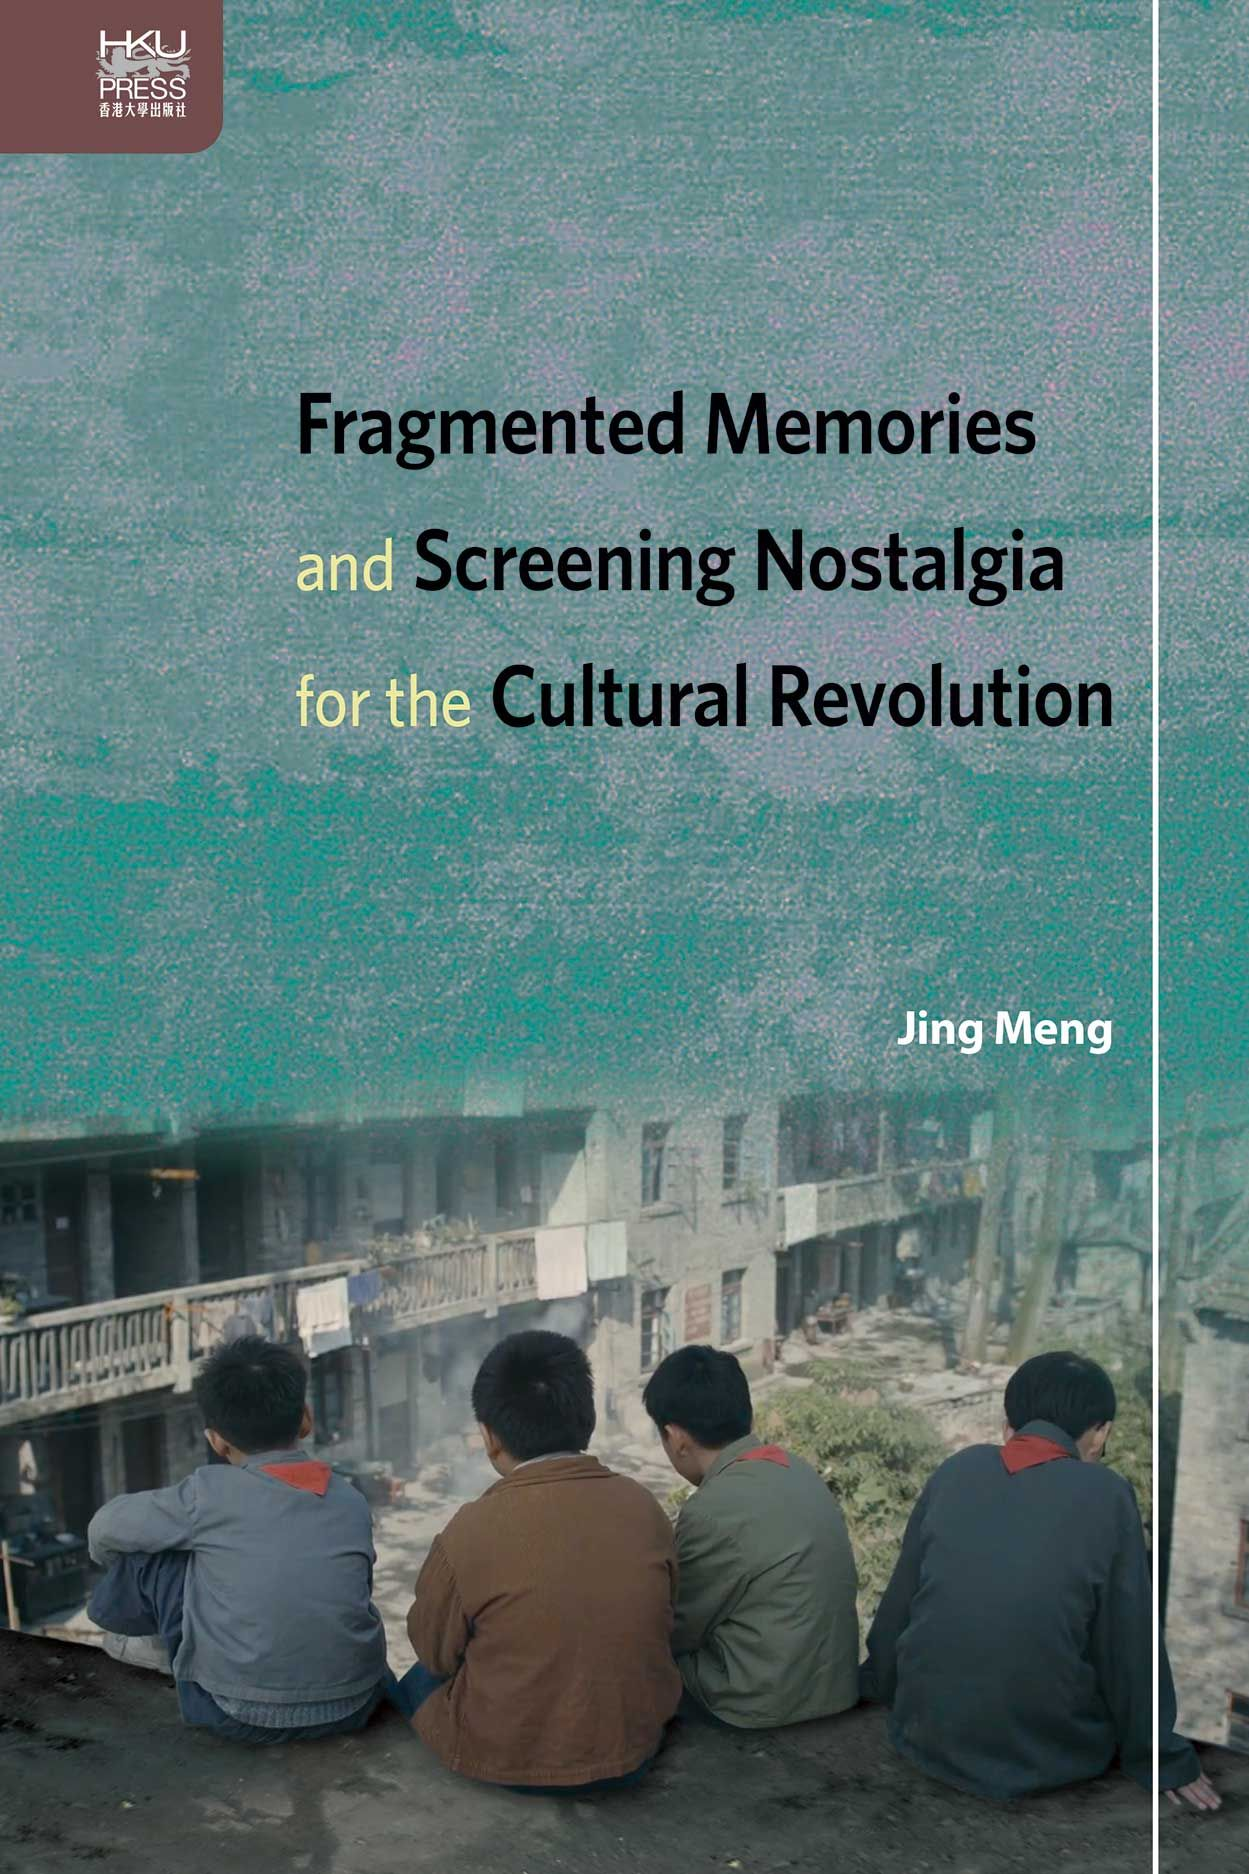 Fragmented Memories and Screening Nostalgia for the Cultural Revolution